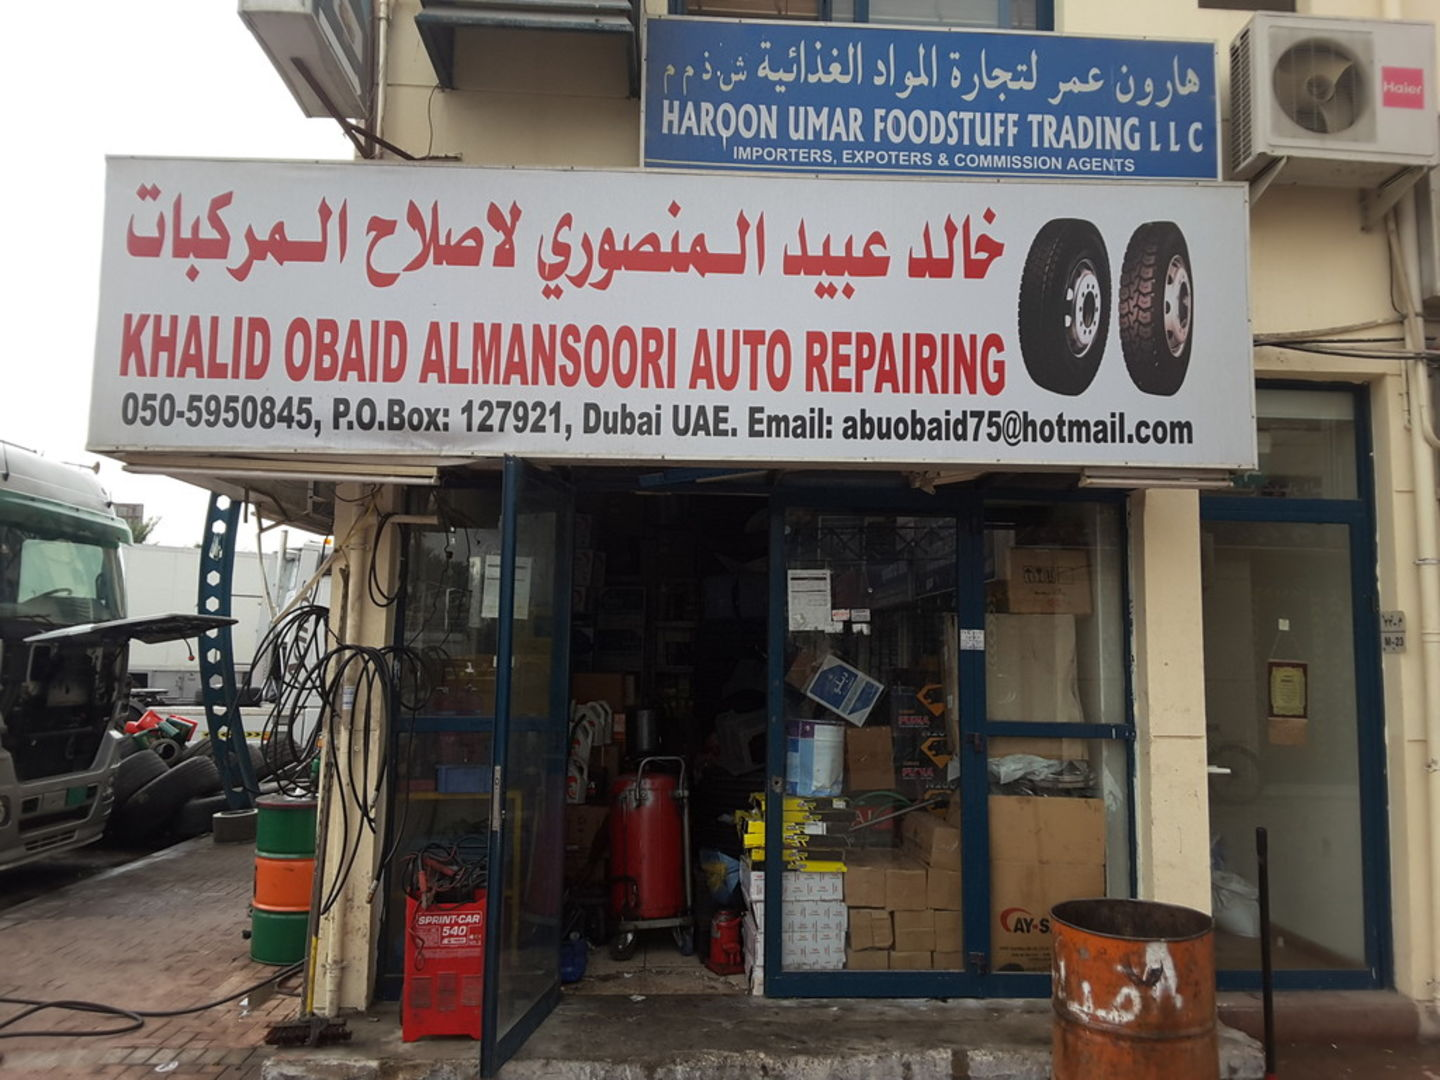 HiDubai-business-khalid-obaid-almansoori-auto-repairing-transport-vehicle-services-heavy-vehicles-sales-services-ras-al-khor-industrial-3-dubai-2